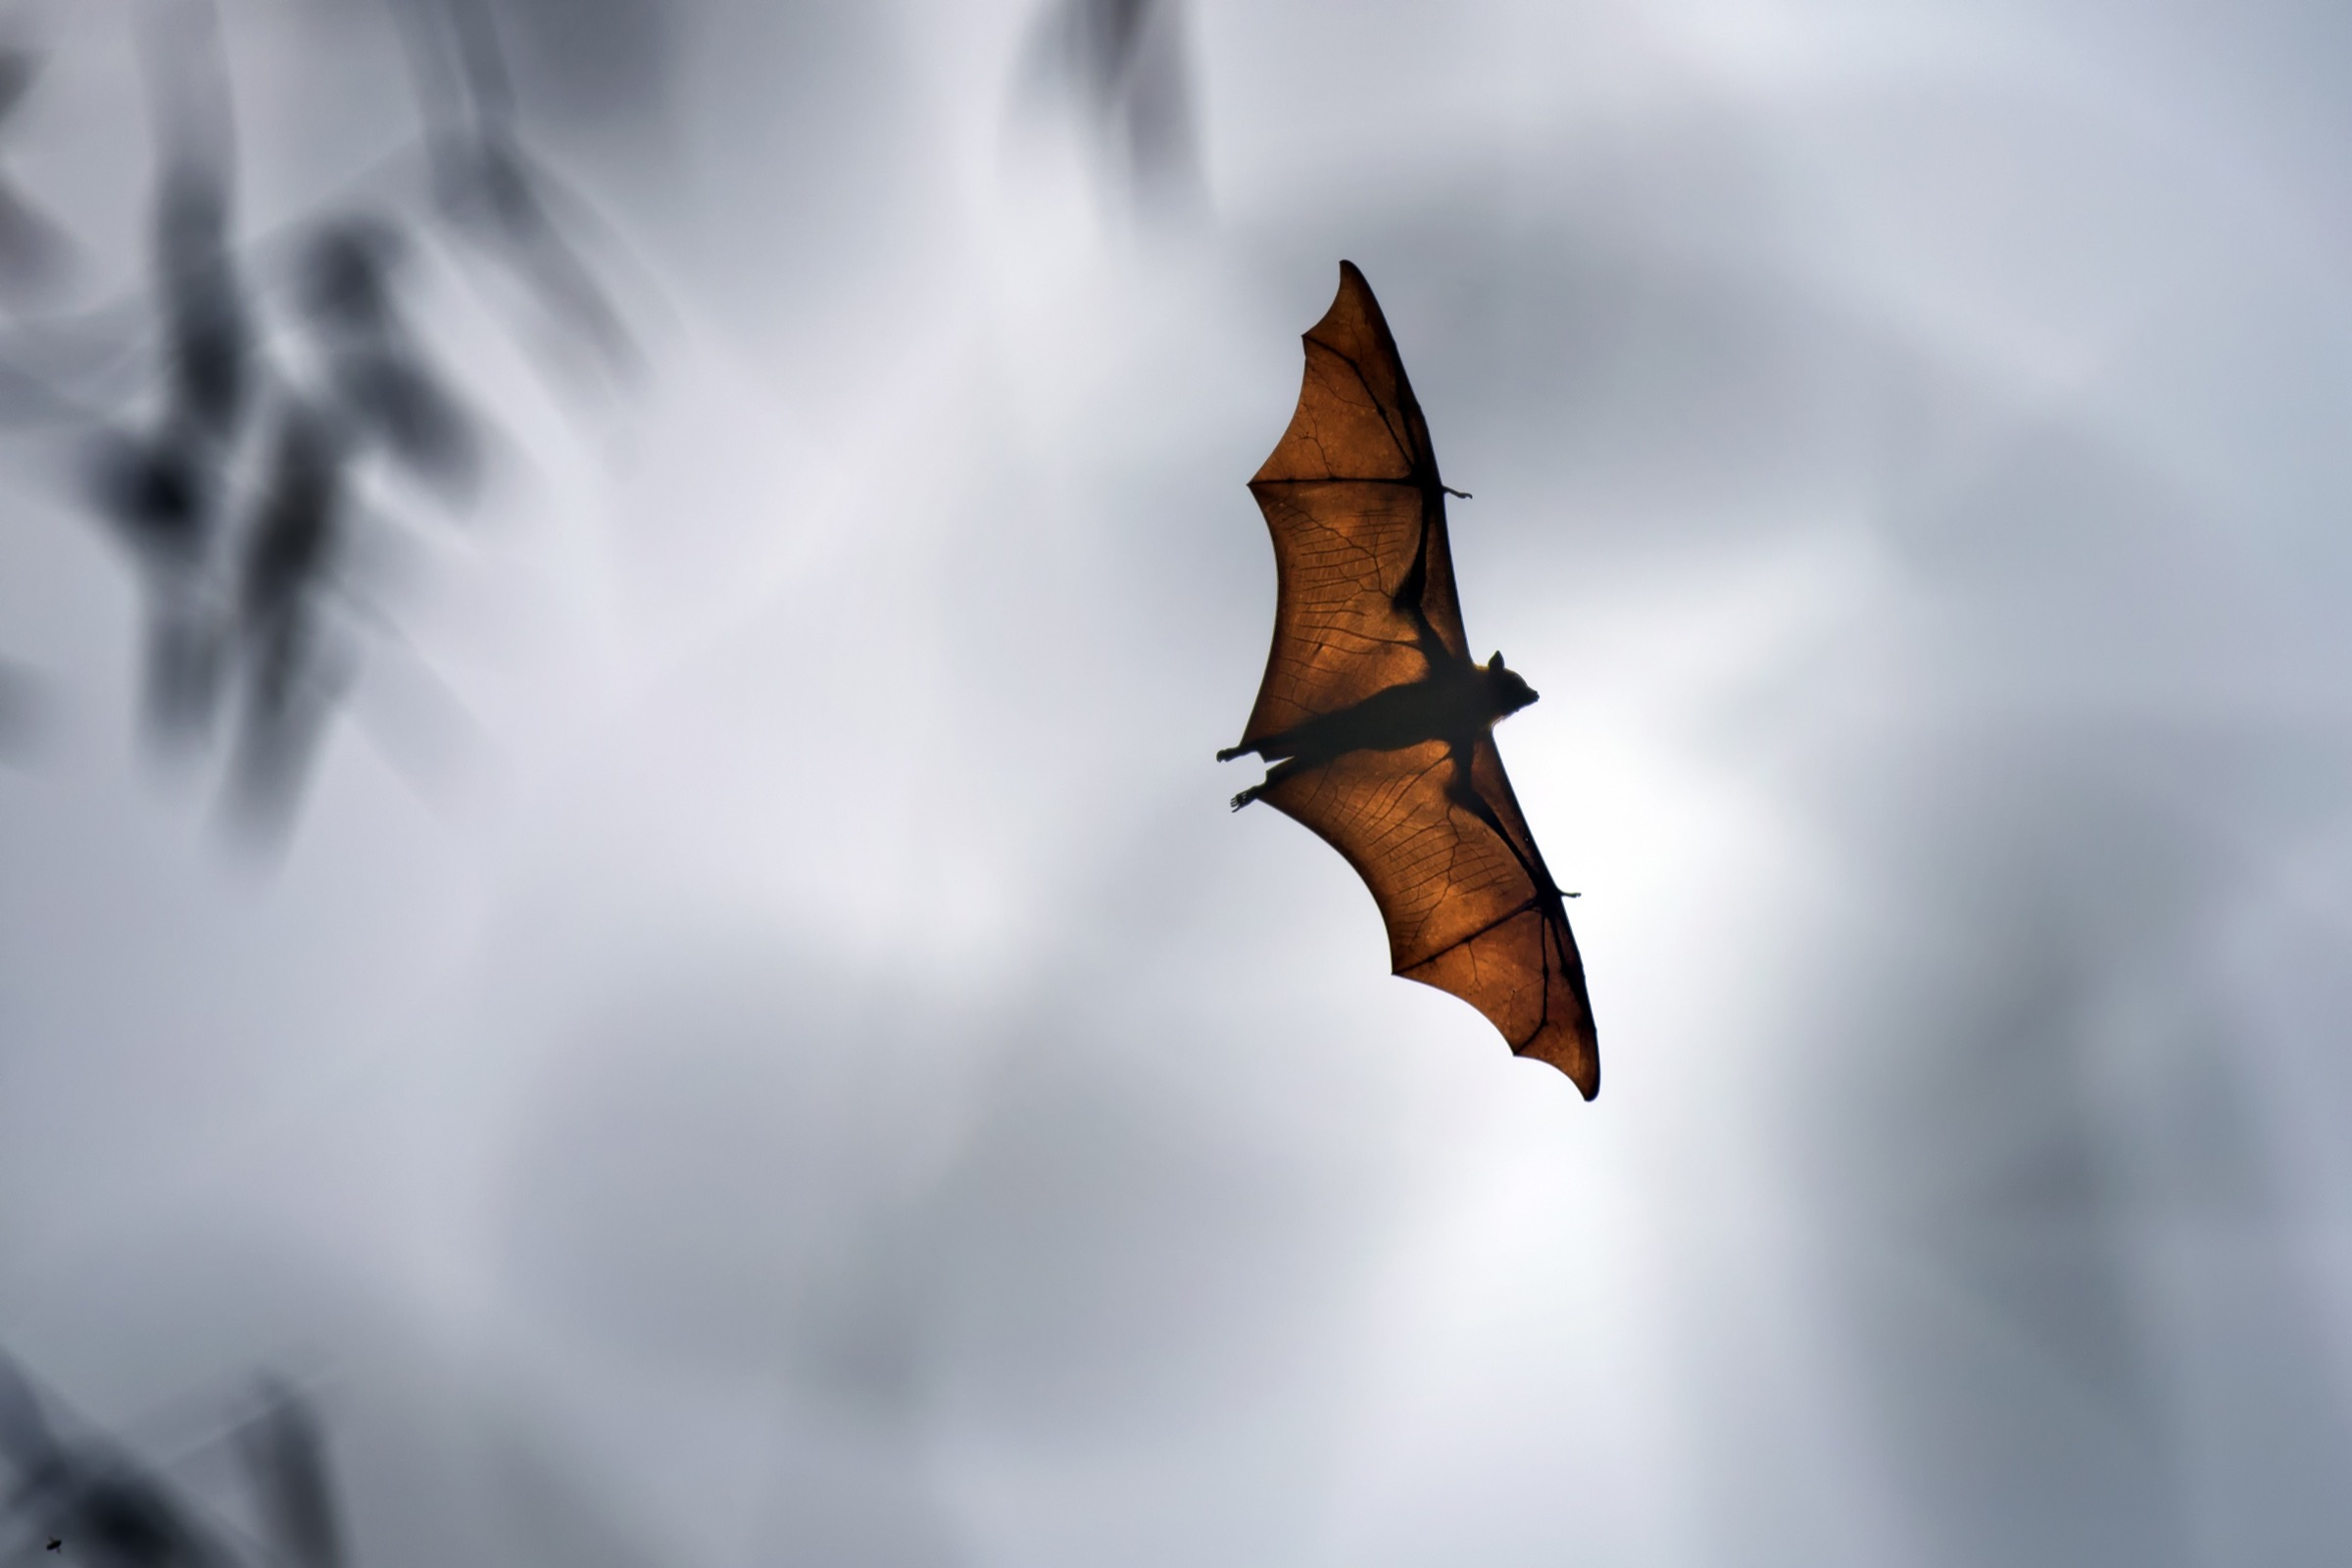 An Indian flying fox (<em>Pteropus medius</em>) passes over a village near northern Bangladesh's Rangpur City looking for an unoccupied spot to roost for the day. Photograph by A.M. Ahad